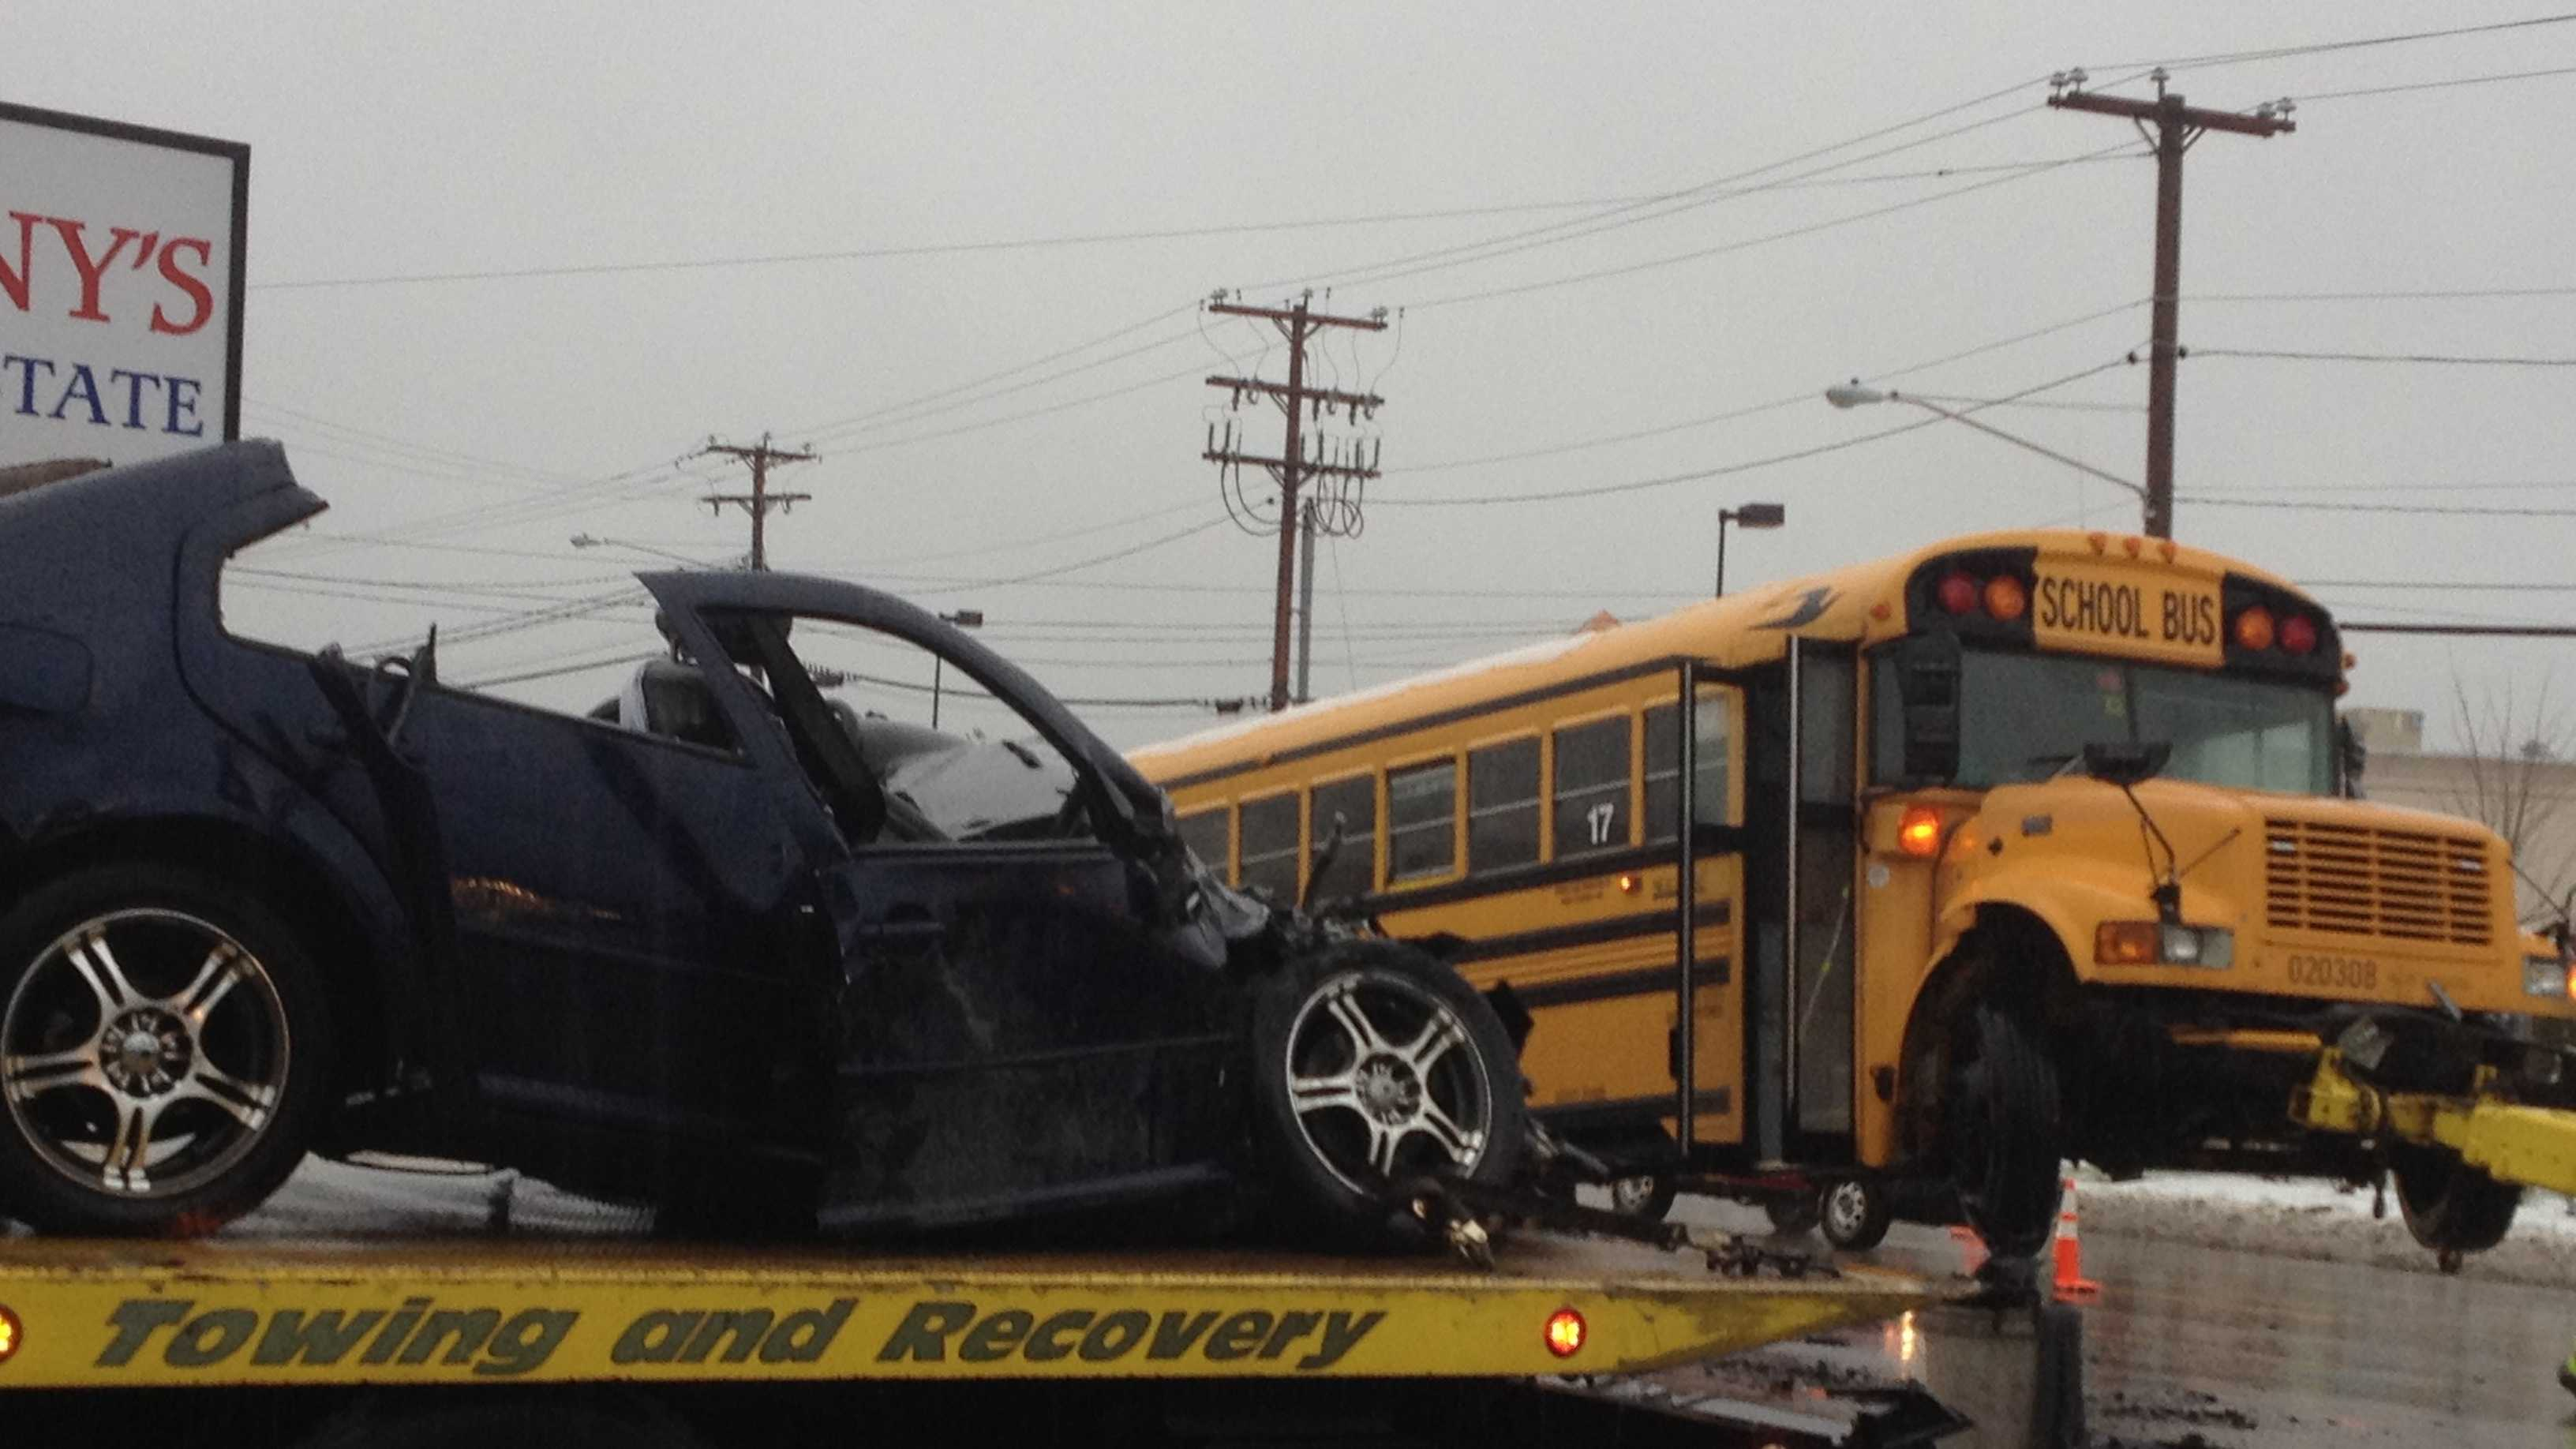 Crash in Exeter involving school bus